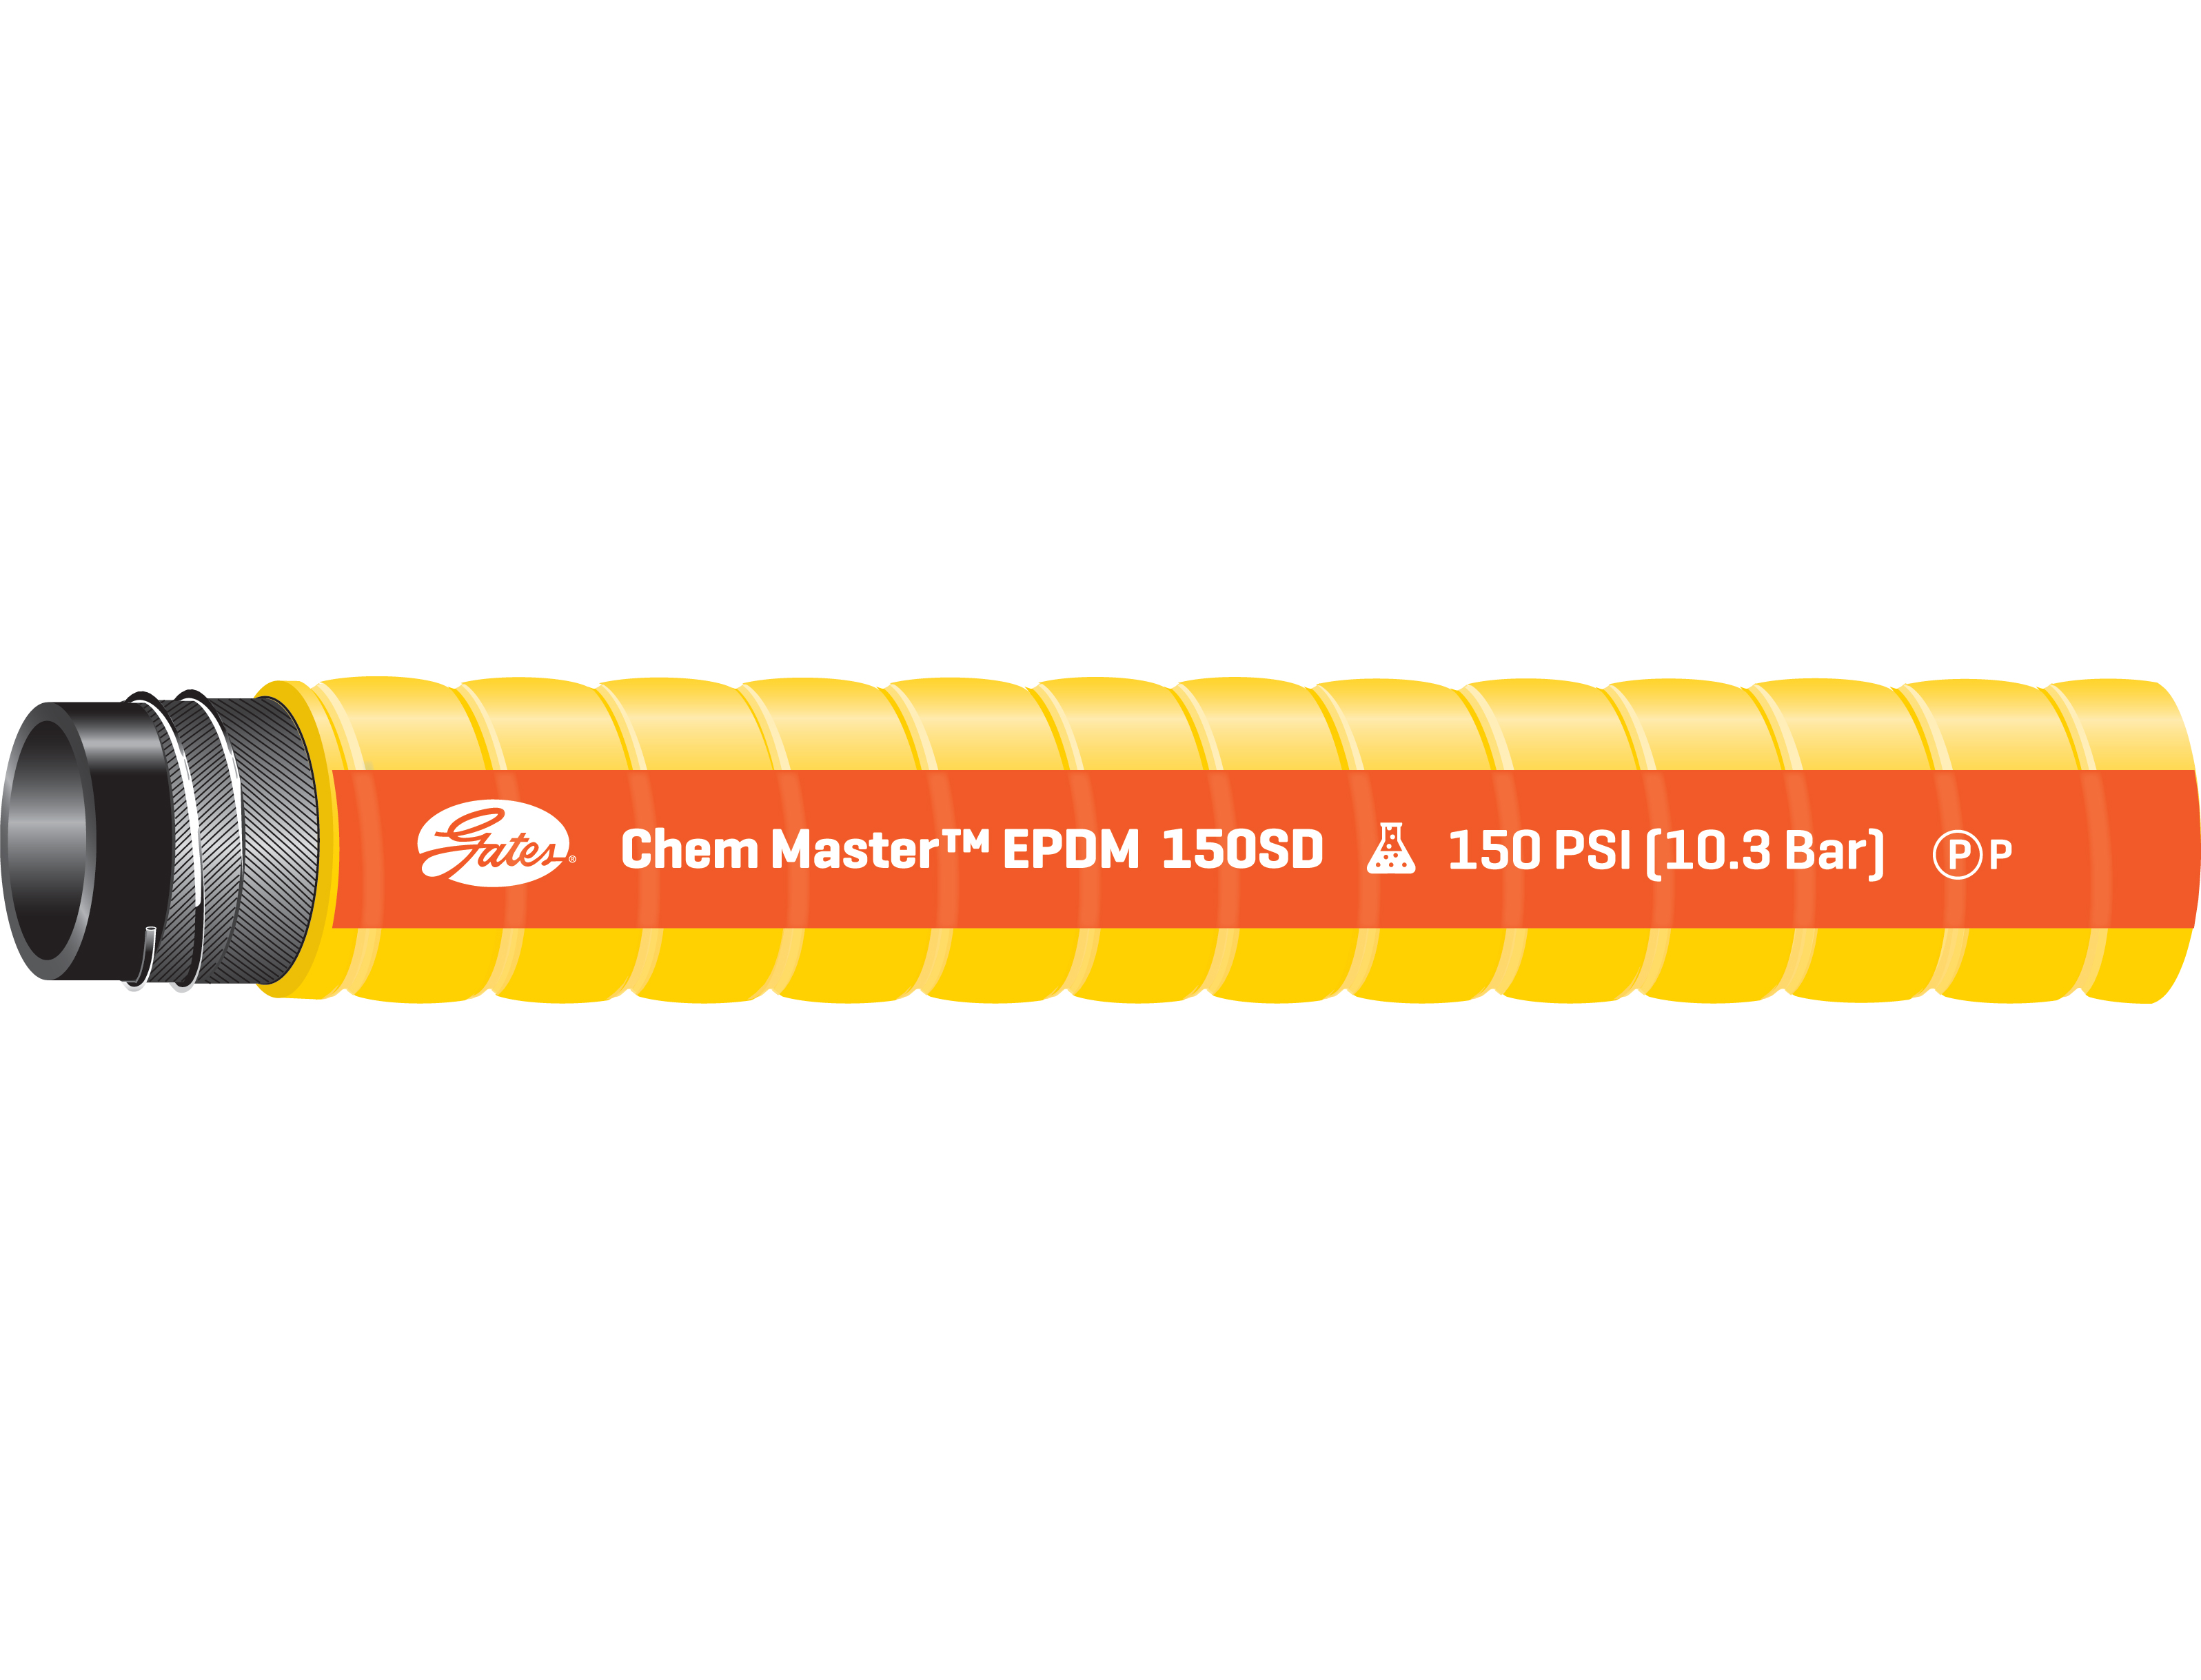 Chem Master EPDM Acid & Chemical Resistant Hose